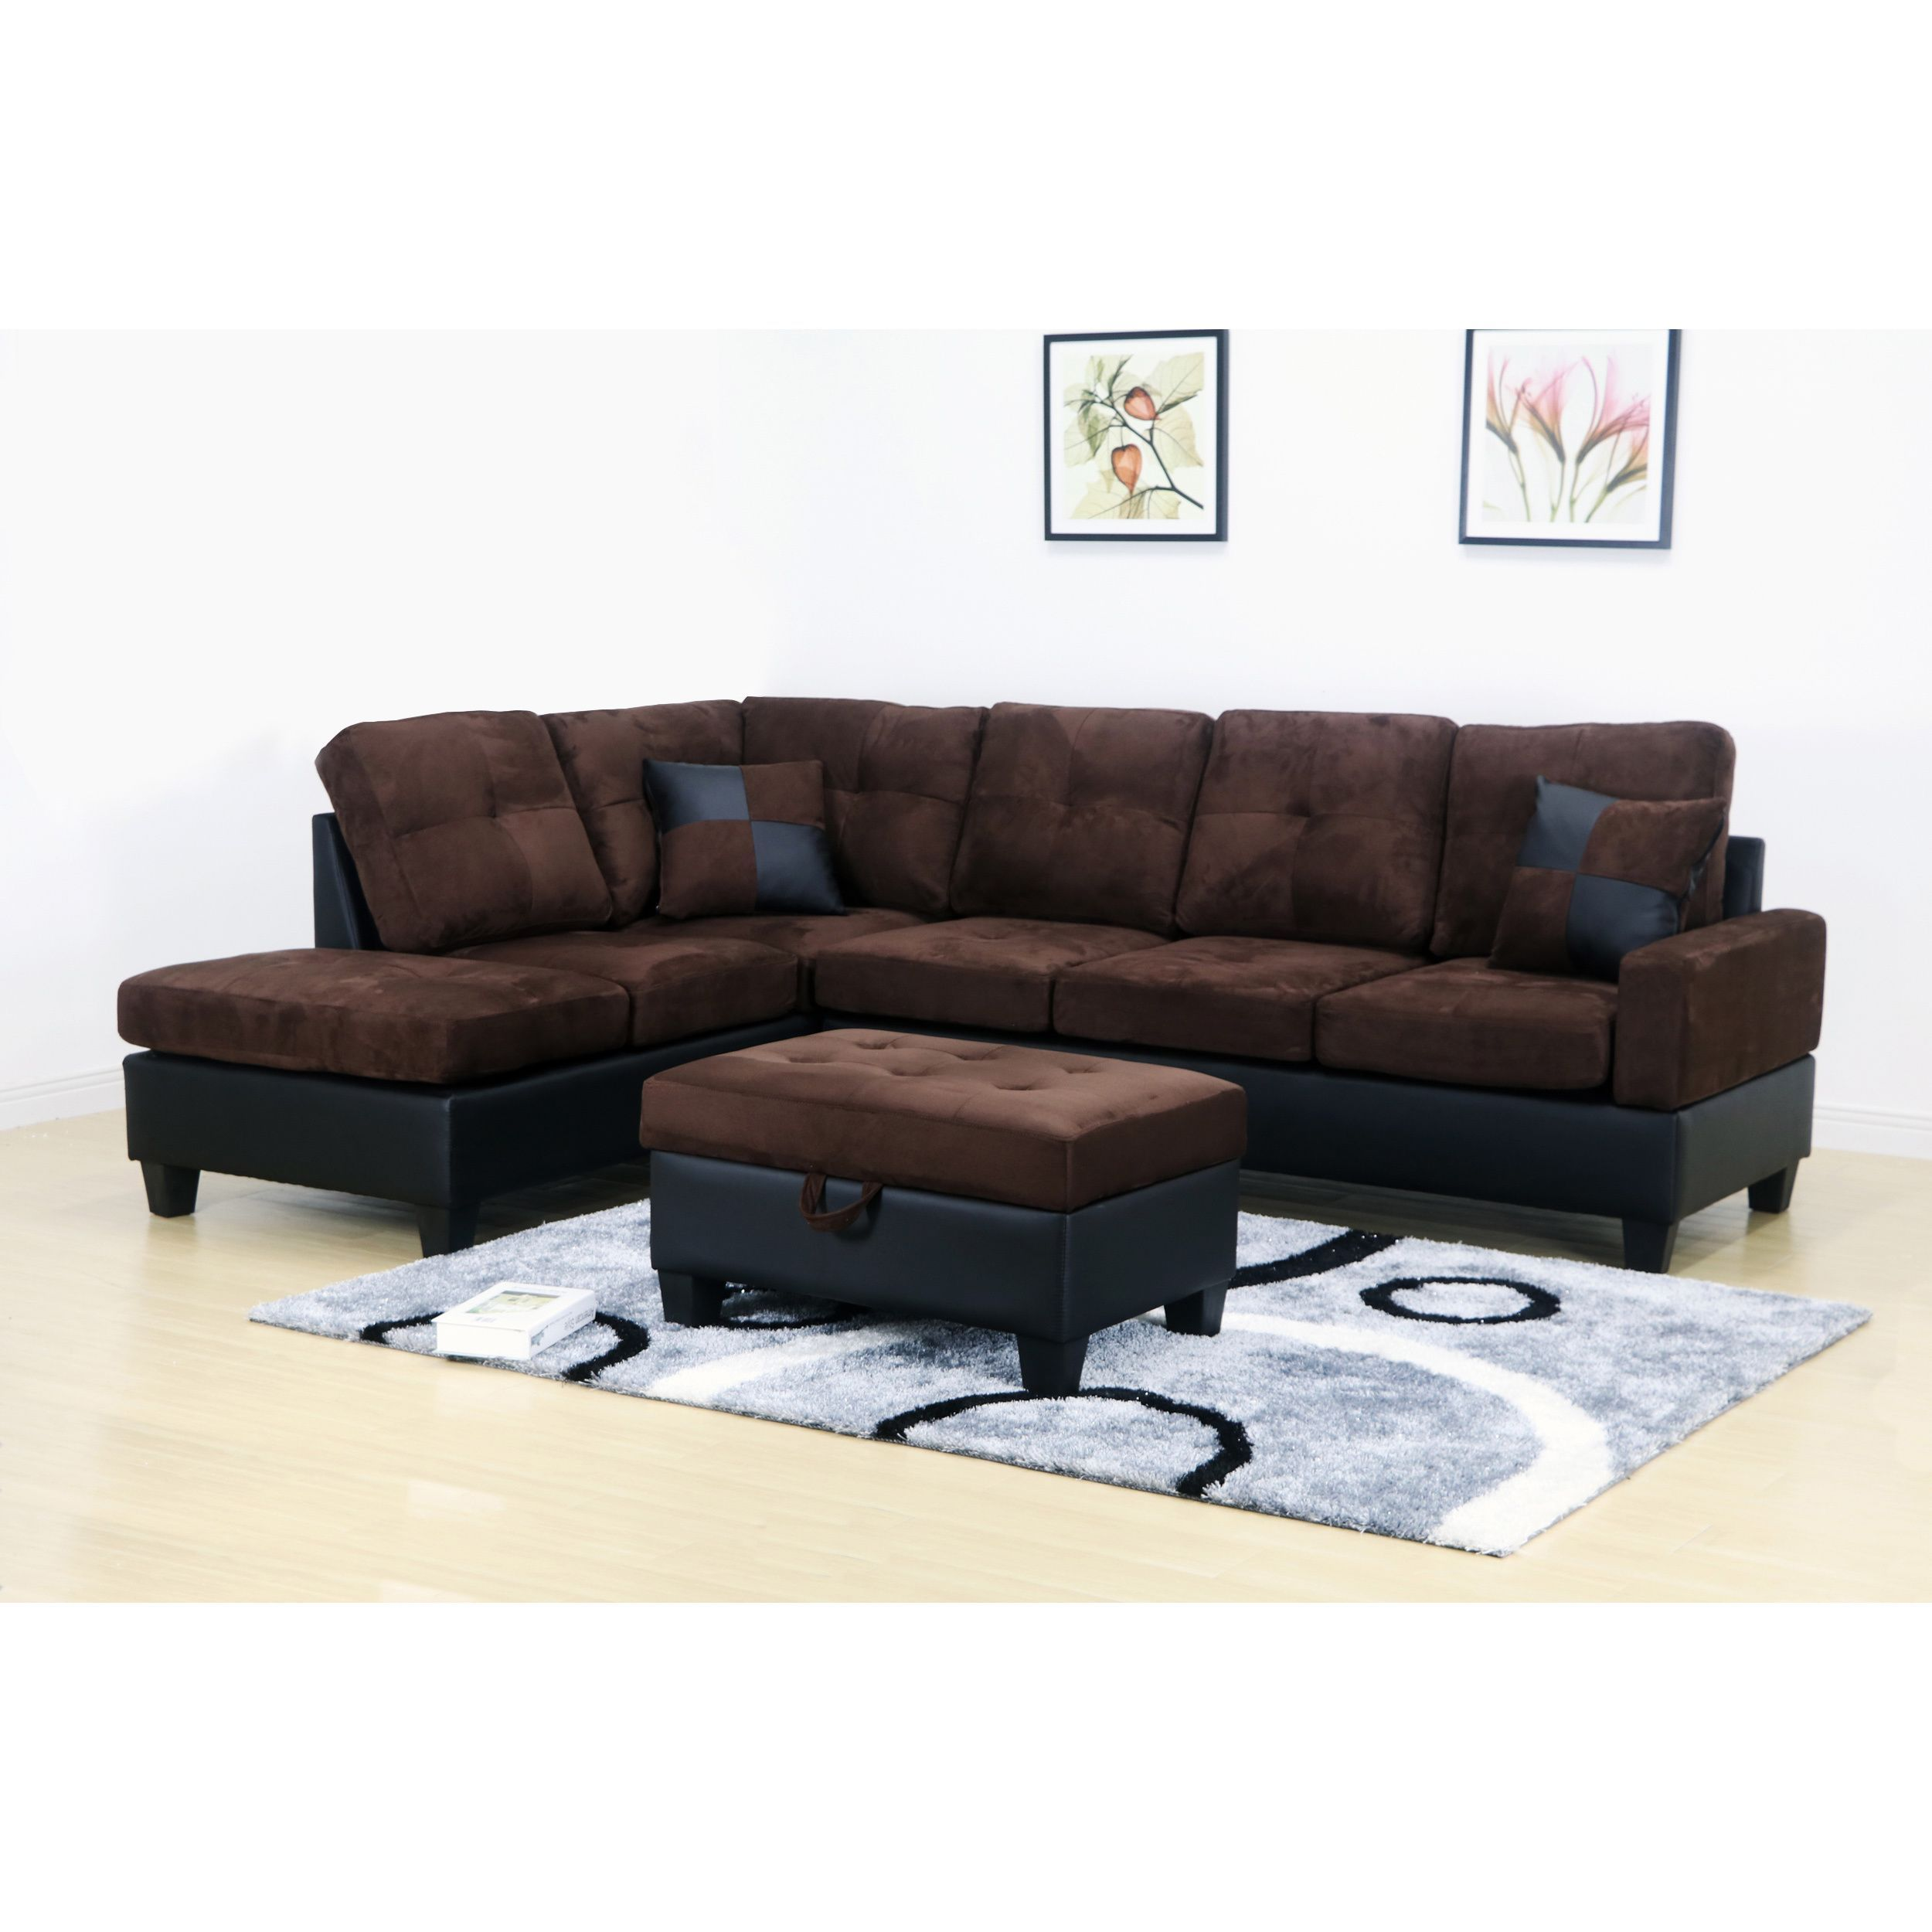 chocolate brown leather sectional sofa with 2 storage ottomans sleeper slipcover black faux ottoman